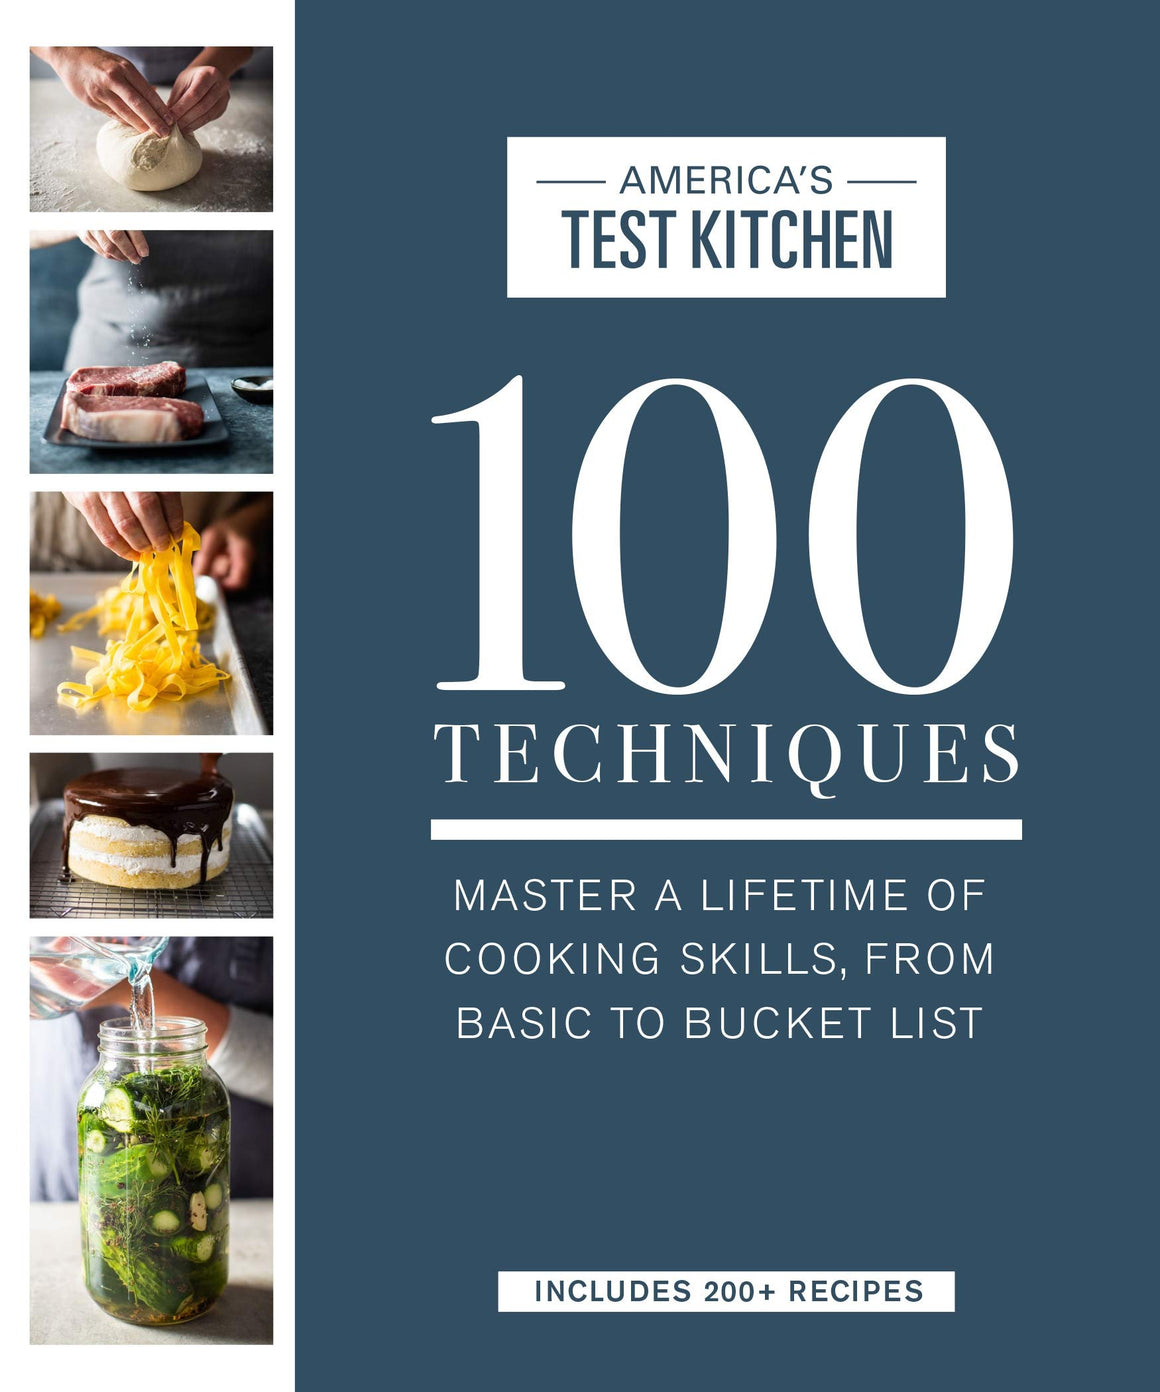 America's Test Kitchen. 100 Techniques: Master a Lifetime of Cooking Skills, from Basic to Bucket List.